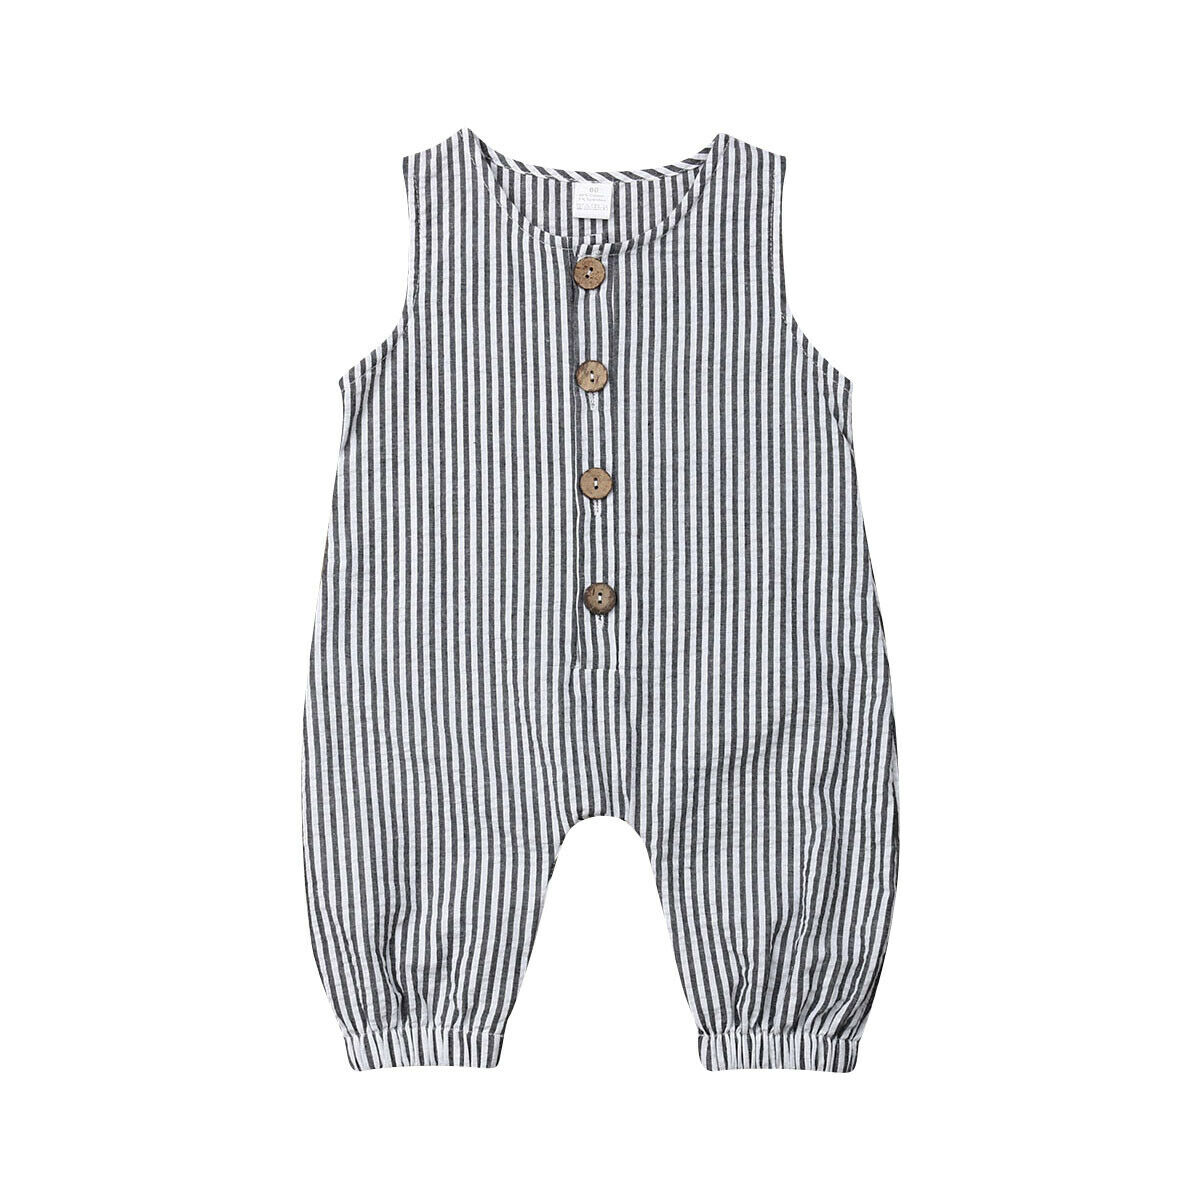 2019 New Baby Boy Cotton Sleeveless Striped   Romper   Jumpsuit Clothes Outfits Sunsuit 0-18M